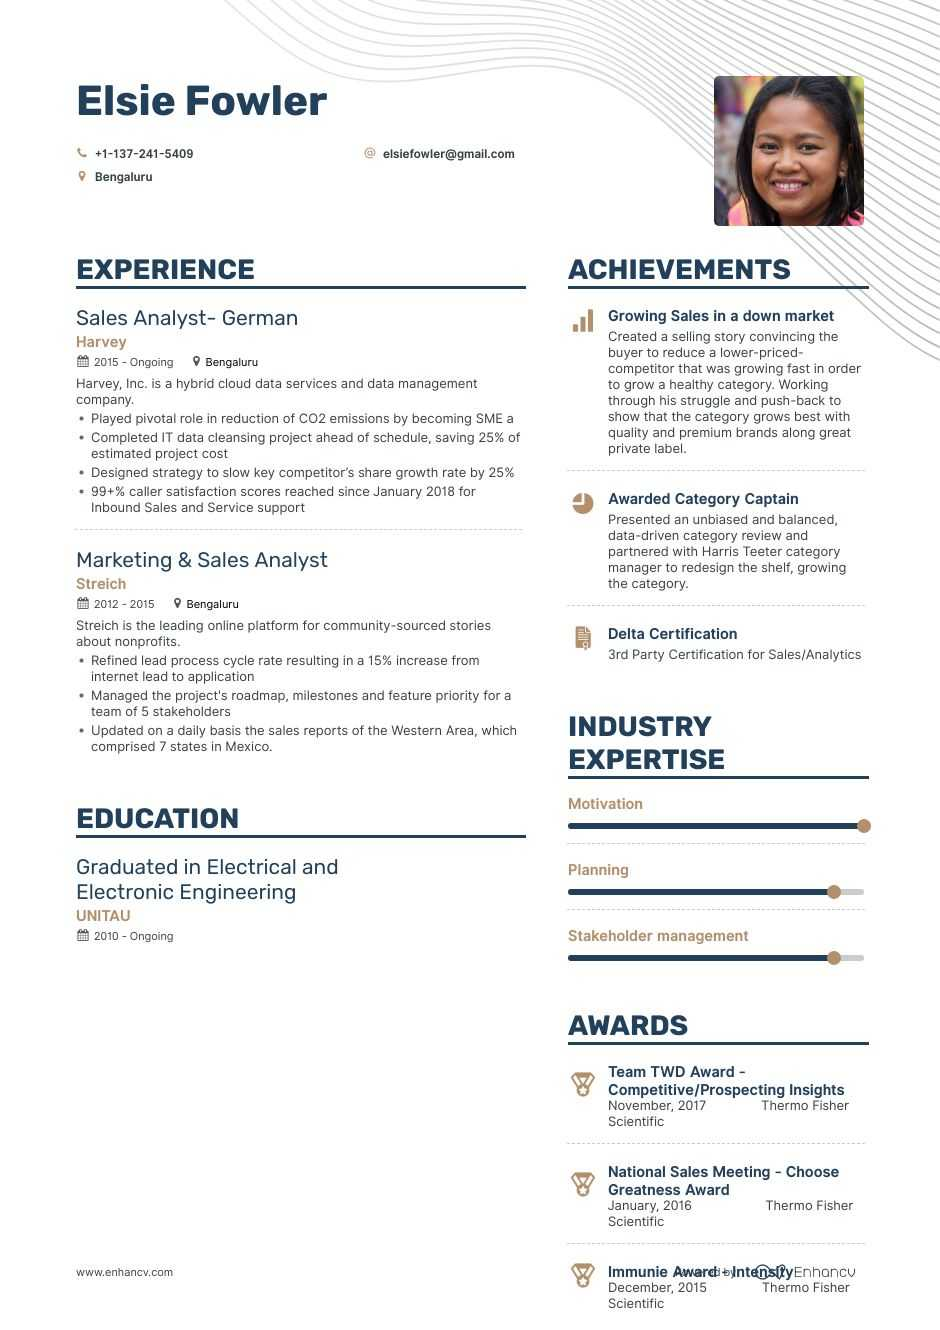 top analyst resume examples samples for enhancv customer service front desk agent job Resume Customer Service Resume Examples 2020